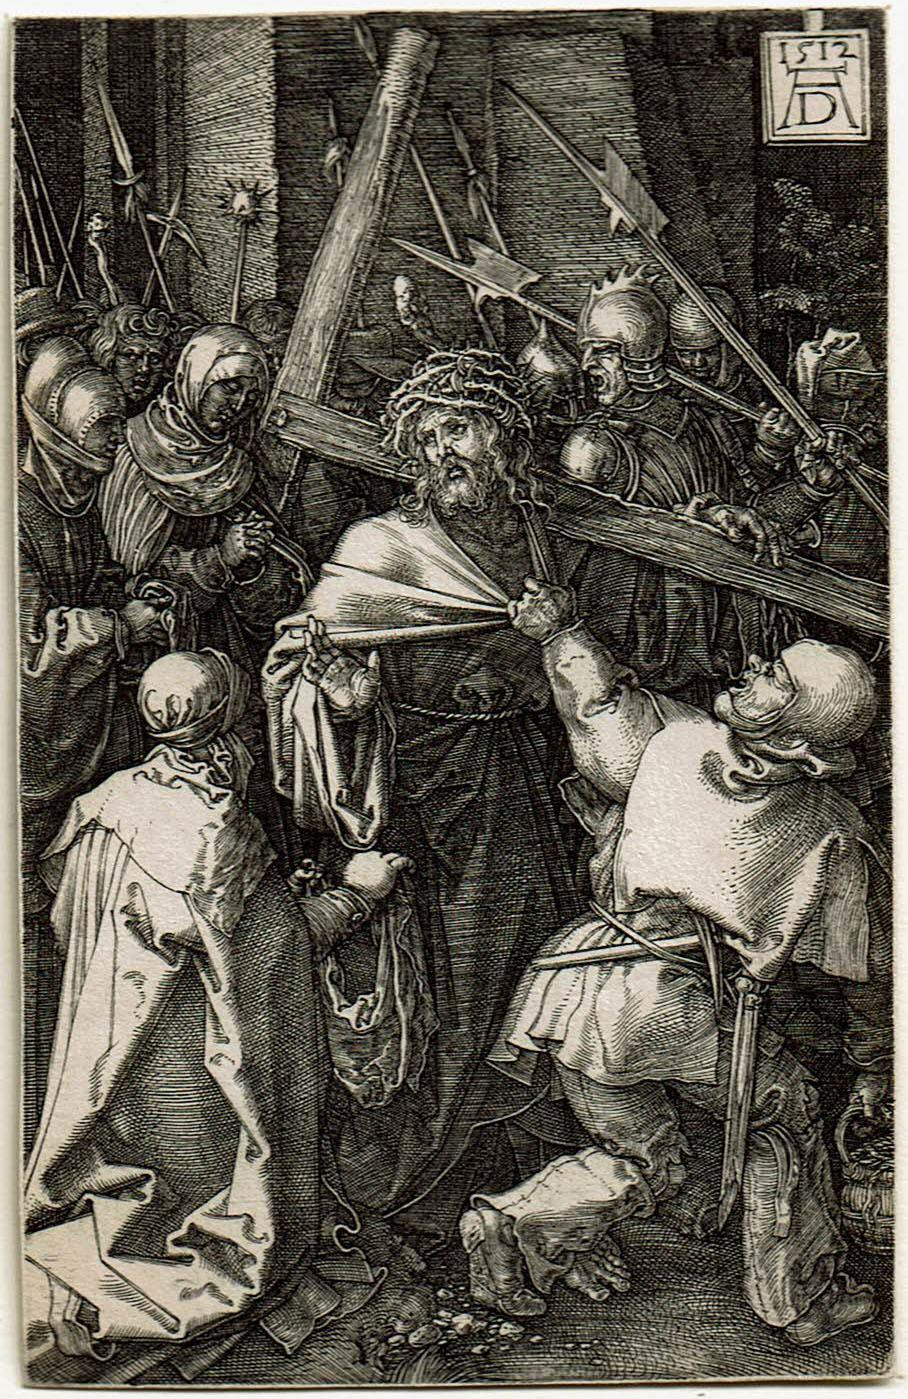 Black and white print by Albrech Durer of Christ carrying the cross. He is surrounded by soldiers that resemble monsters or ogres carrying spears and clubs.